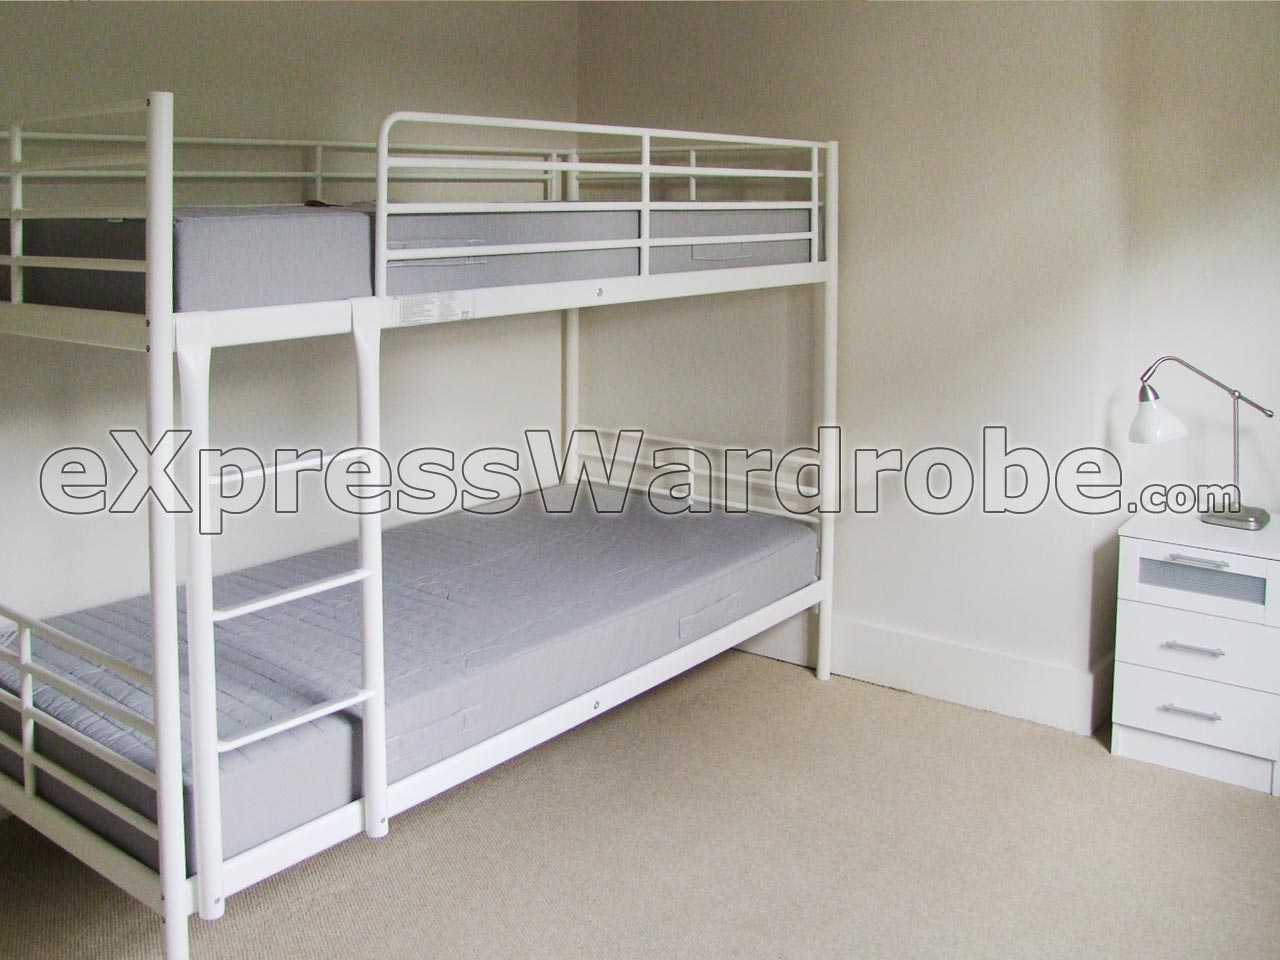 Picture of: Top Bedroom Furniture Designs Cheap Bedroom Furniture Designer Bedroom Furniture Furniture Assembly